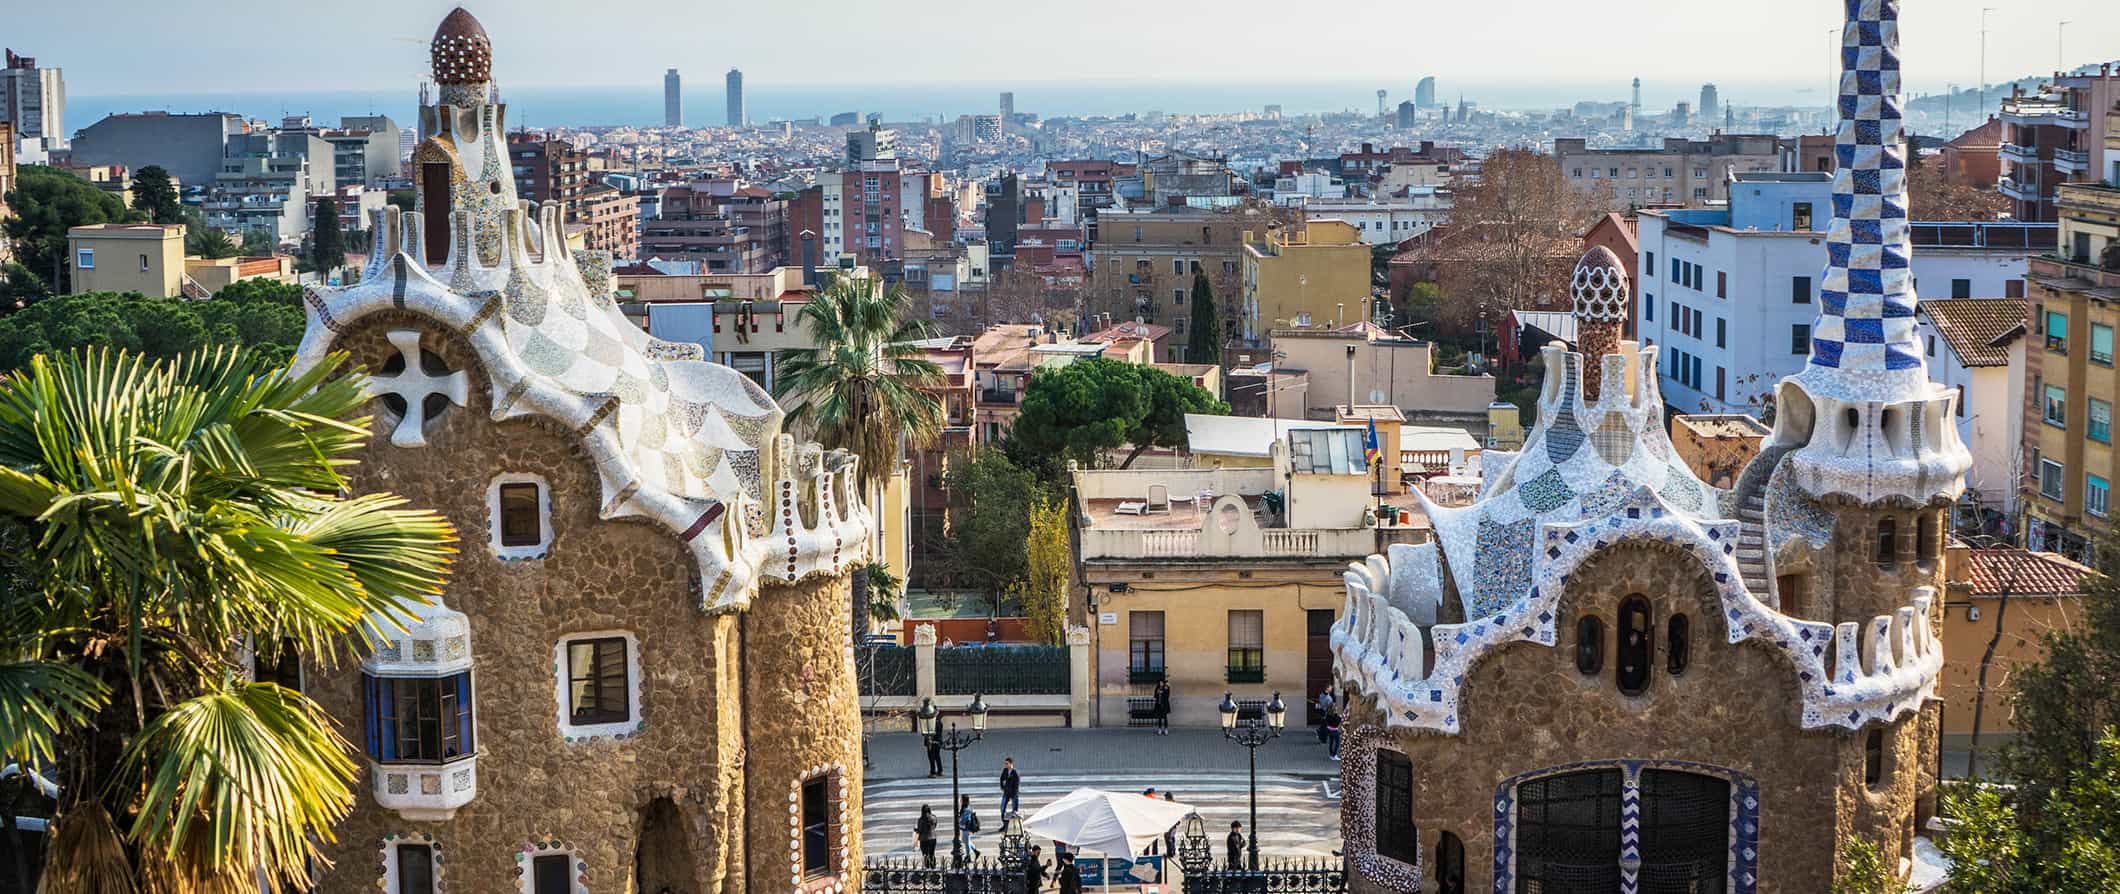 Gaudi architecture with Barcelona's skyline in the background